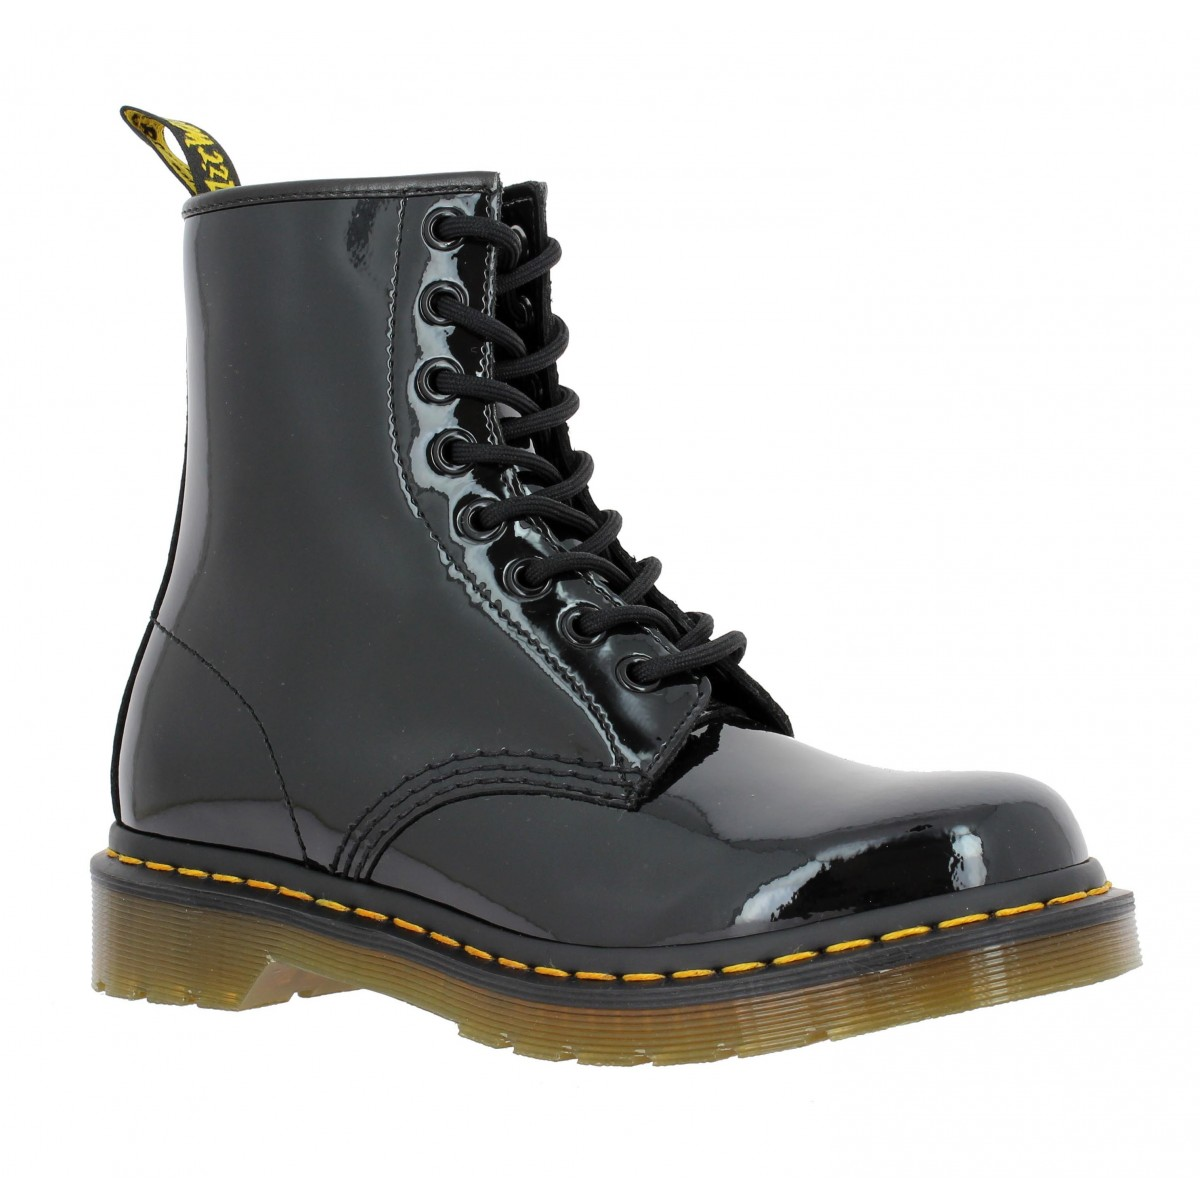 soldes dr martens 1460 vernis femme noir fanny chaussures. Black Bedroom Furniture Sets. Home Design Ideas